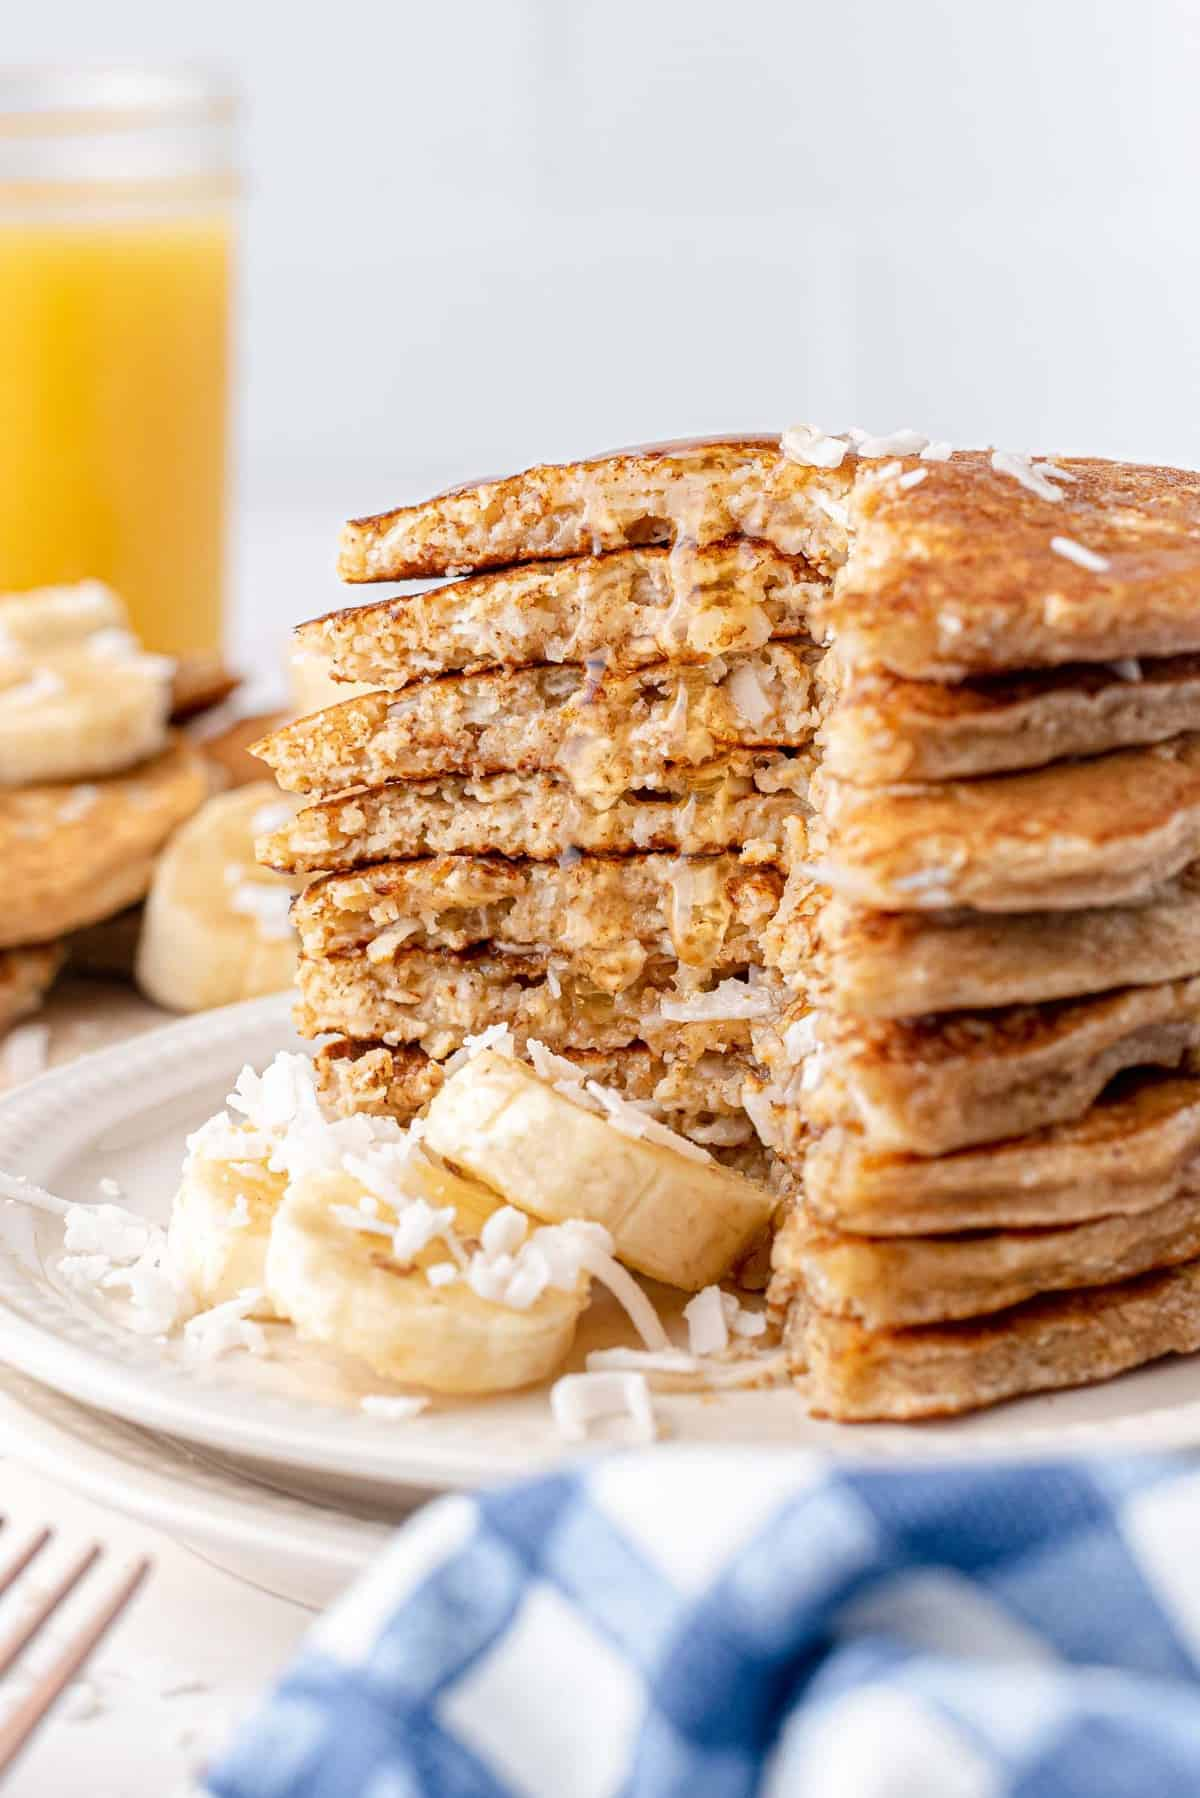 Tall stack of pancakes with banana slices.